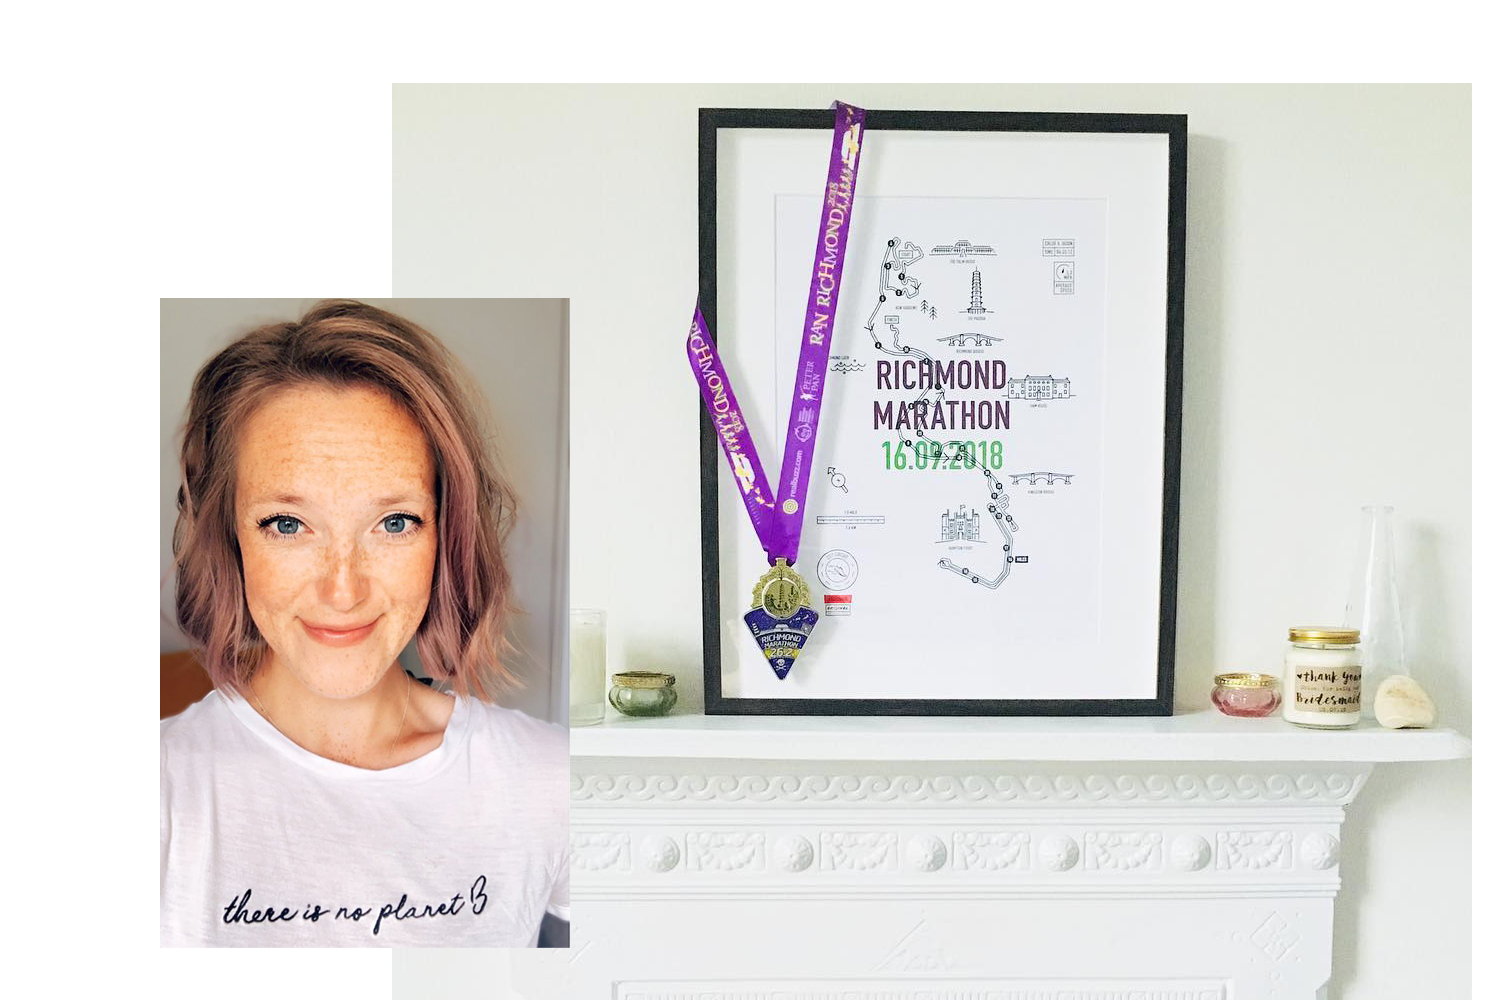 Blog-posts-chloe-bletsoe-marathon-blues-importance-of-recovery-and-reflection-after-running-a-marathon.png